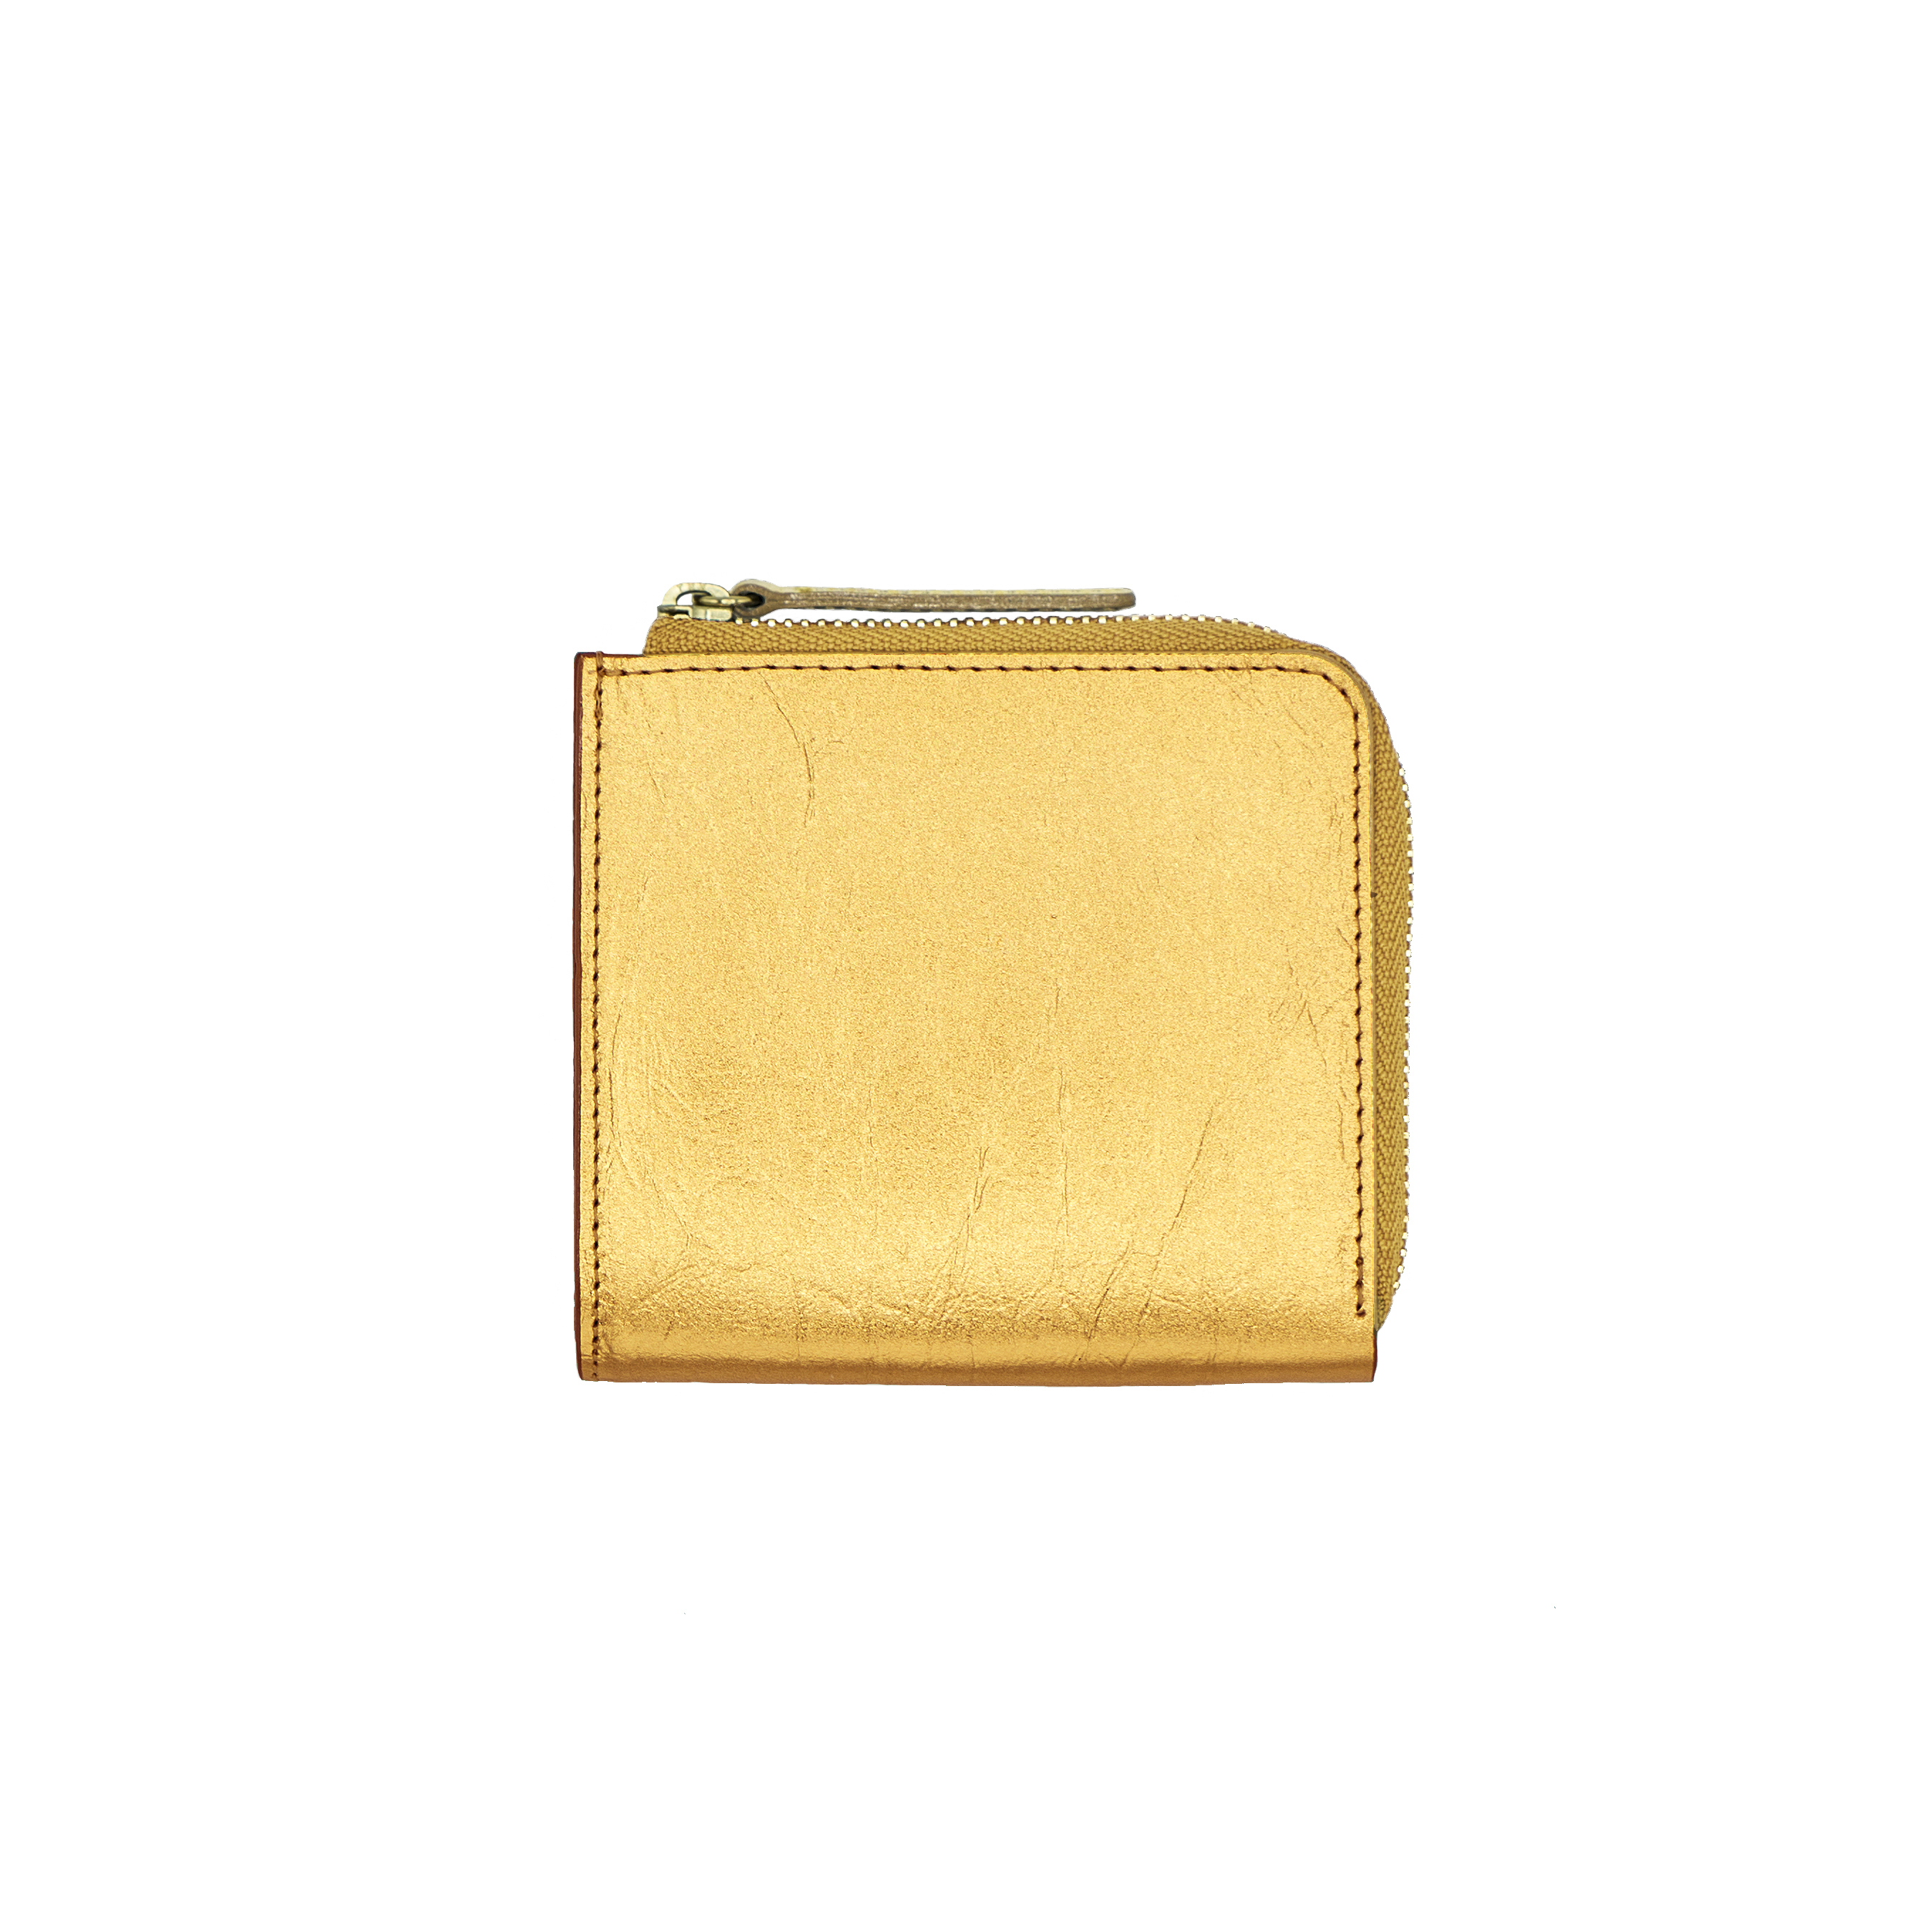 《財布S》TIN BREATH Small purse Gold